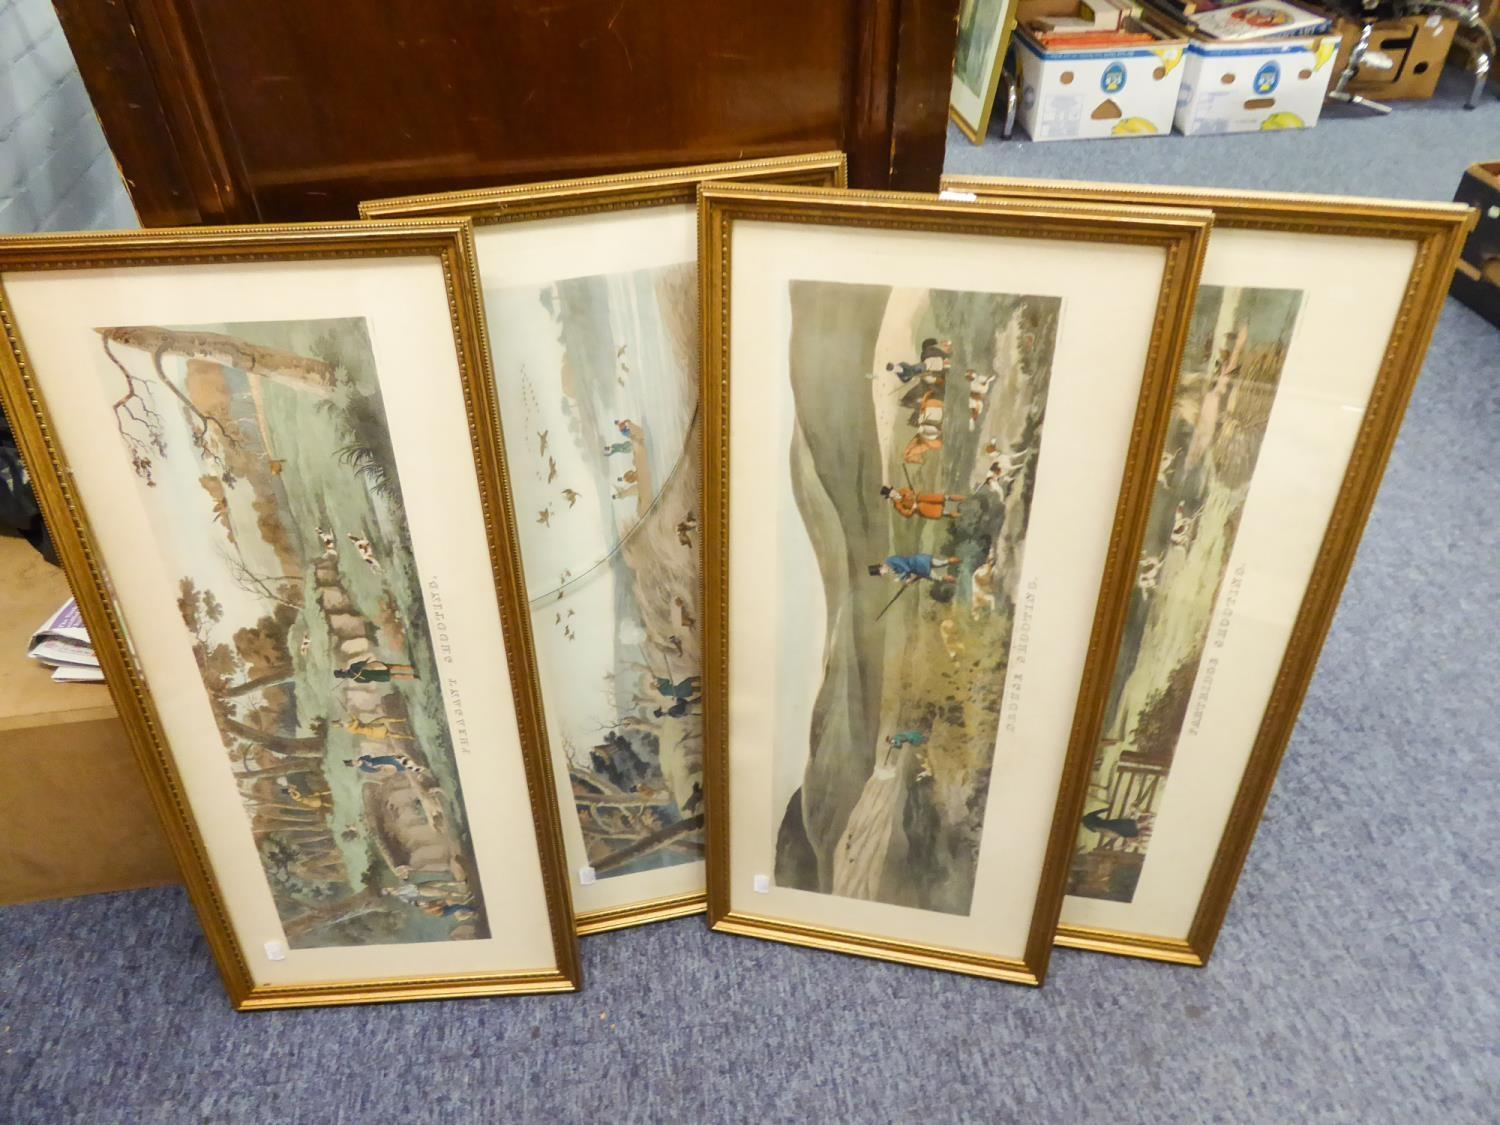 Lot 292 - AFTER ACKERMAN SET OF FOUR GAME BIRD ?SHOOTING? COLOUR PRINTS FROM ENGRAVINGS 8 ½? X 26?, FRAMED AND